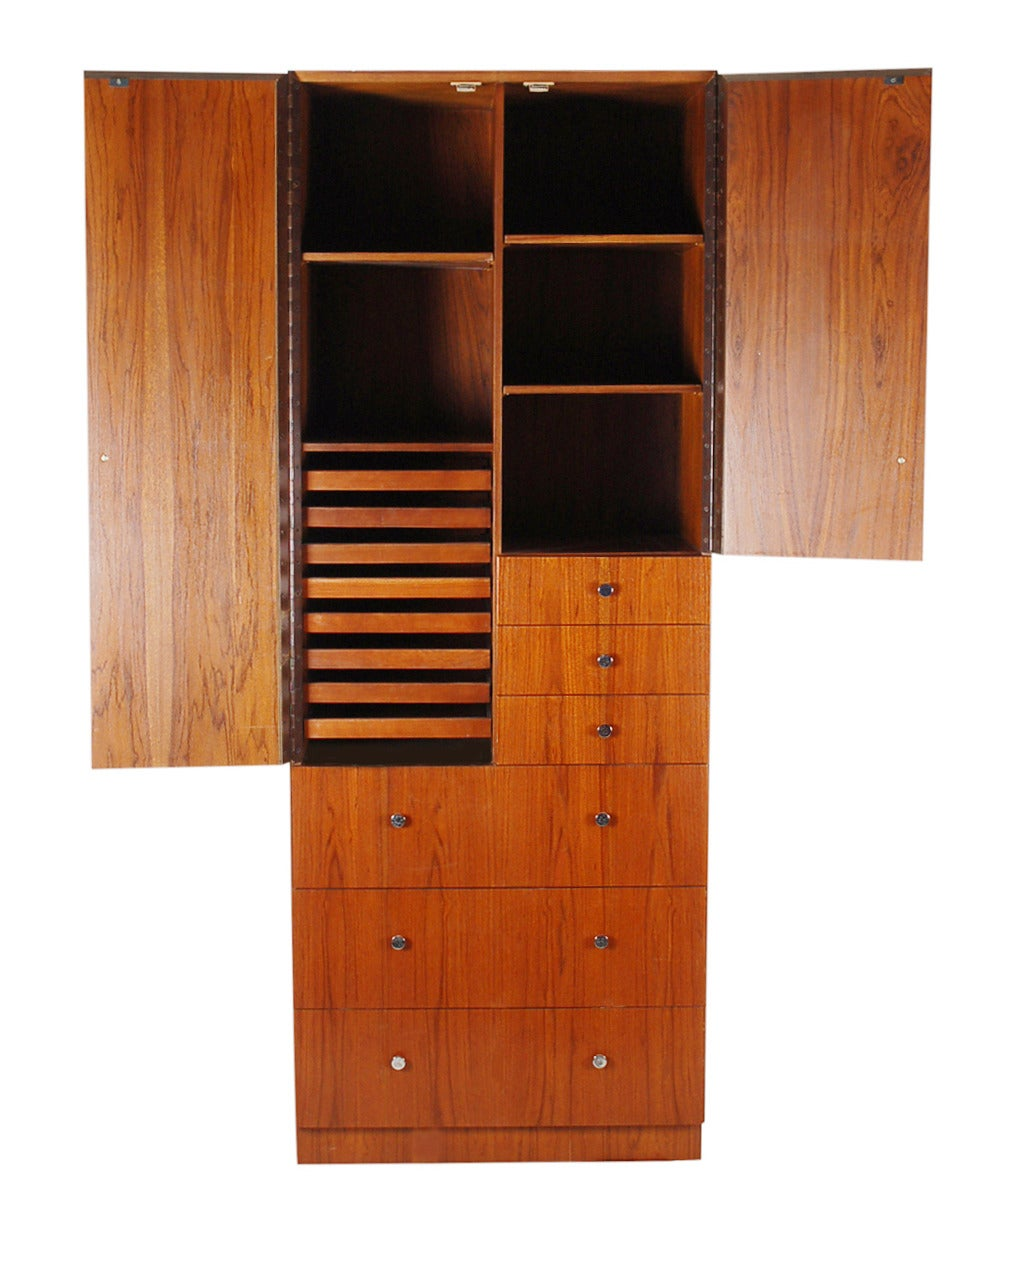 Tall Mid-Century Modern Cabinet in Walnut with Chrome Pulls at 1stdibs